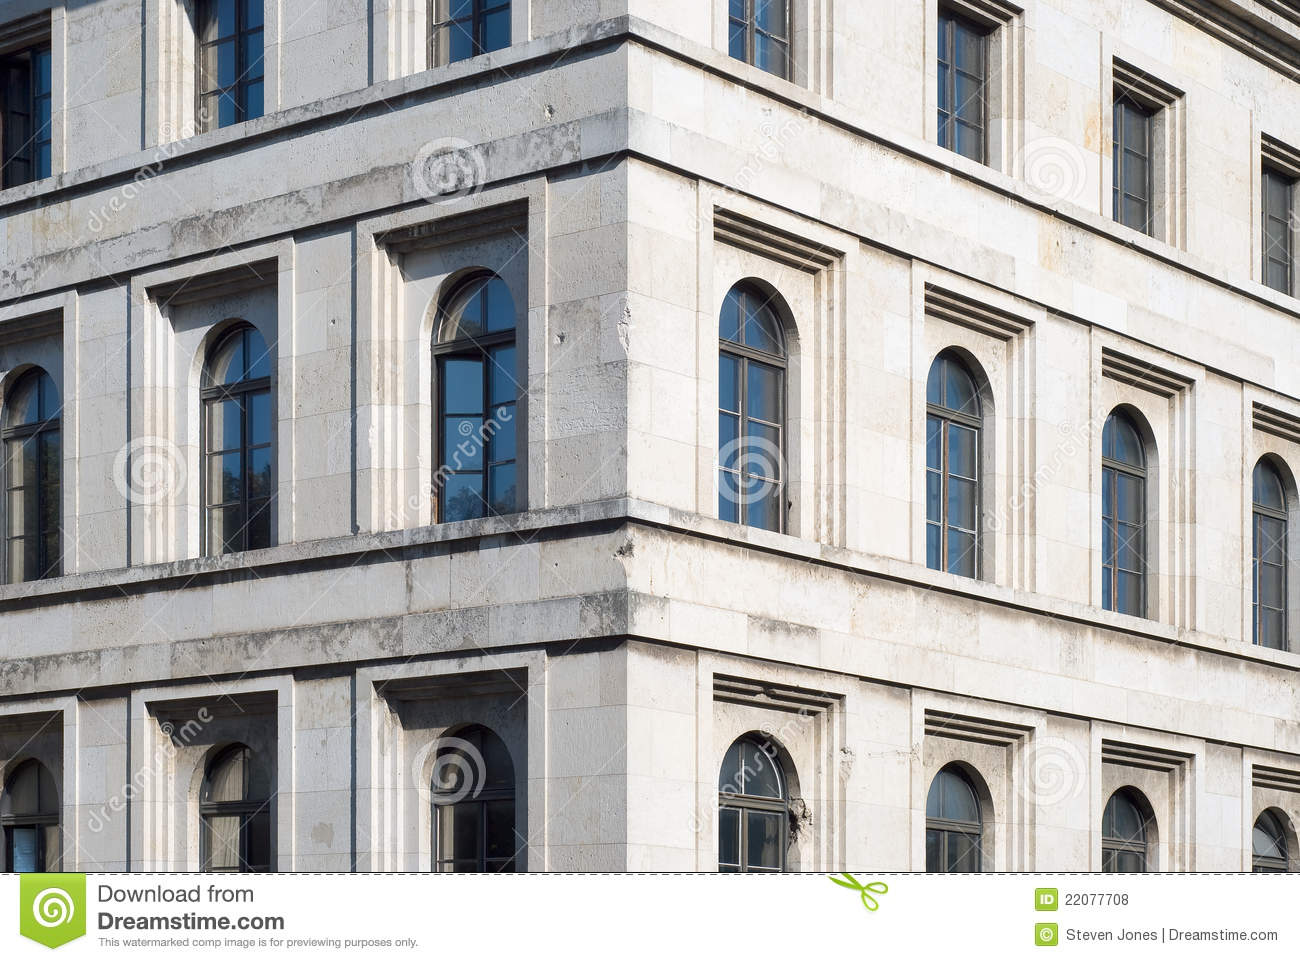 Nazi architecture royalty free stock photos image 22077708 for Architecture nazi